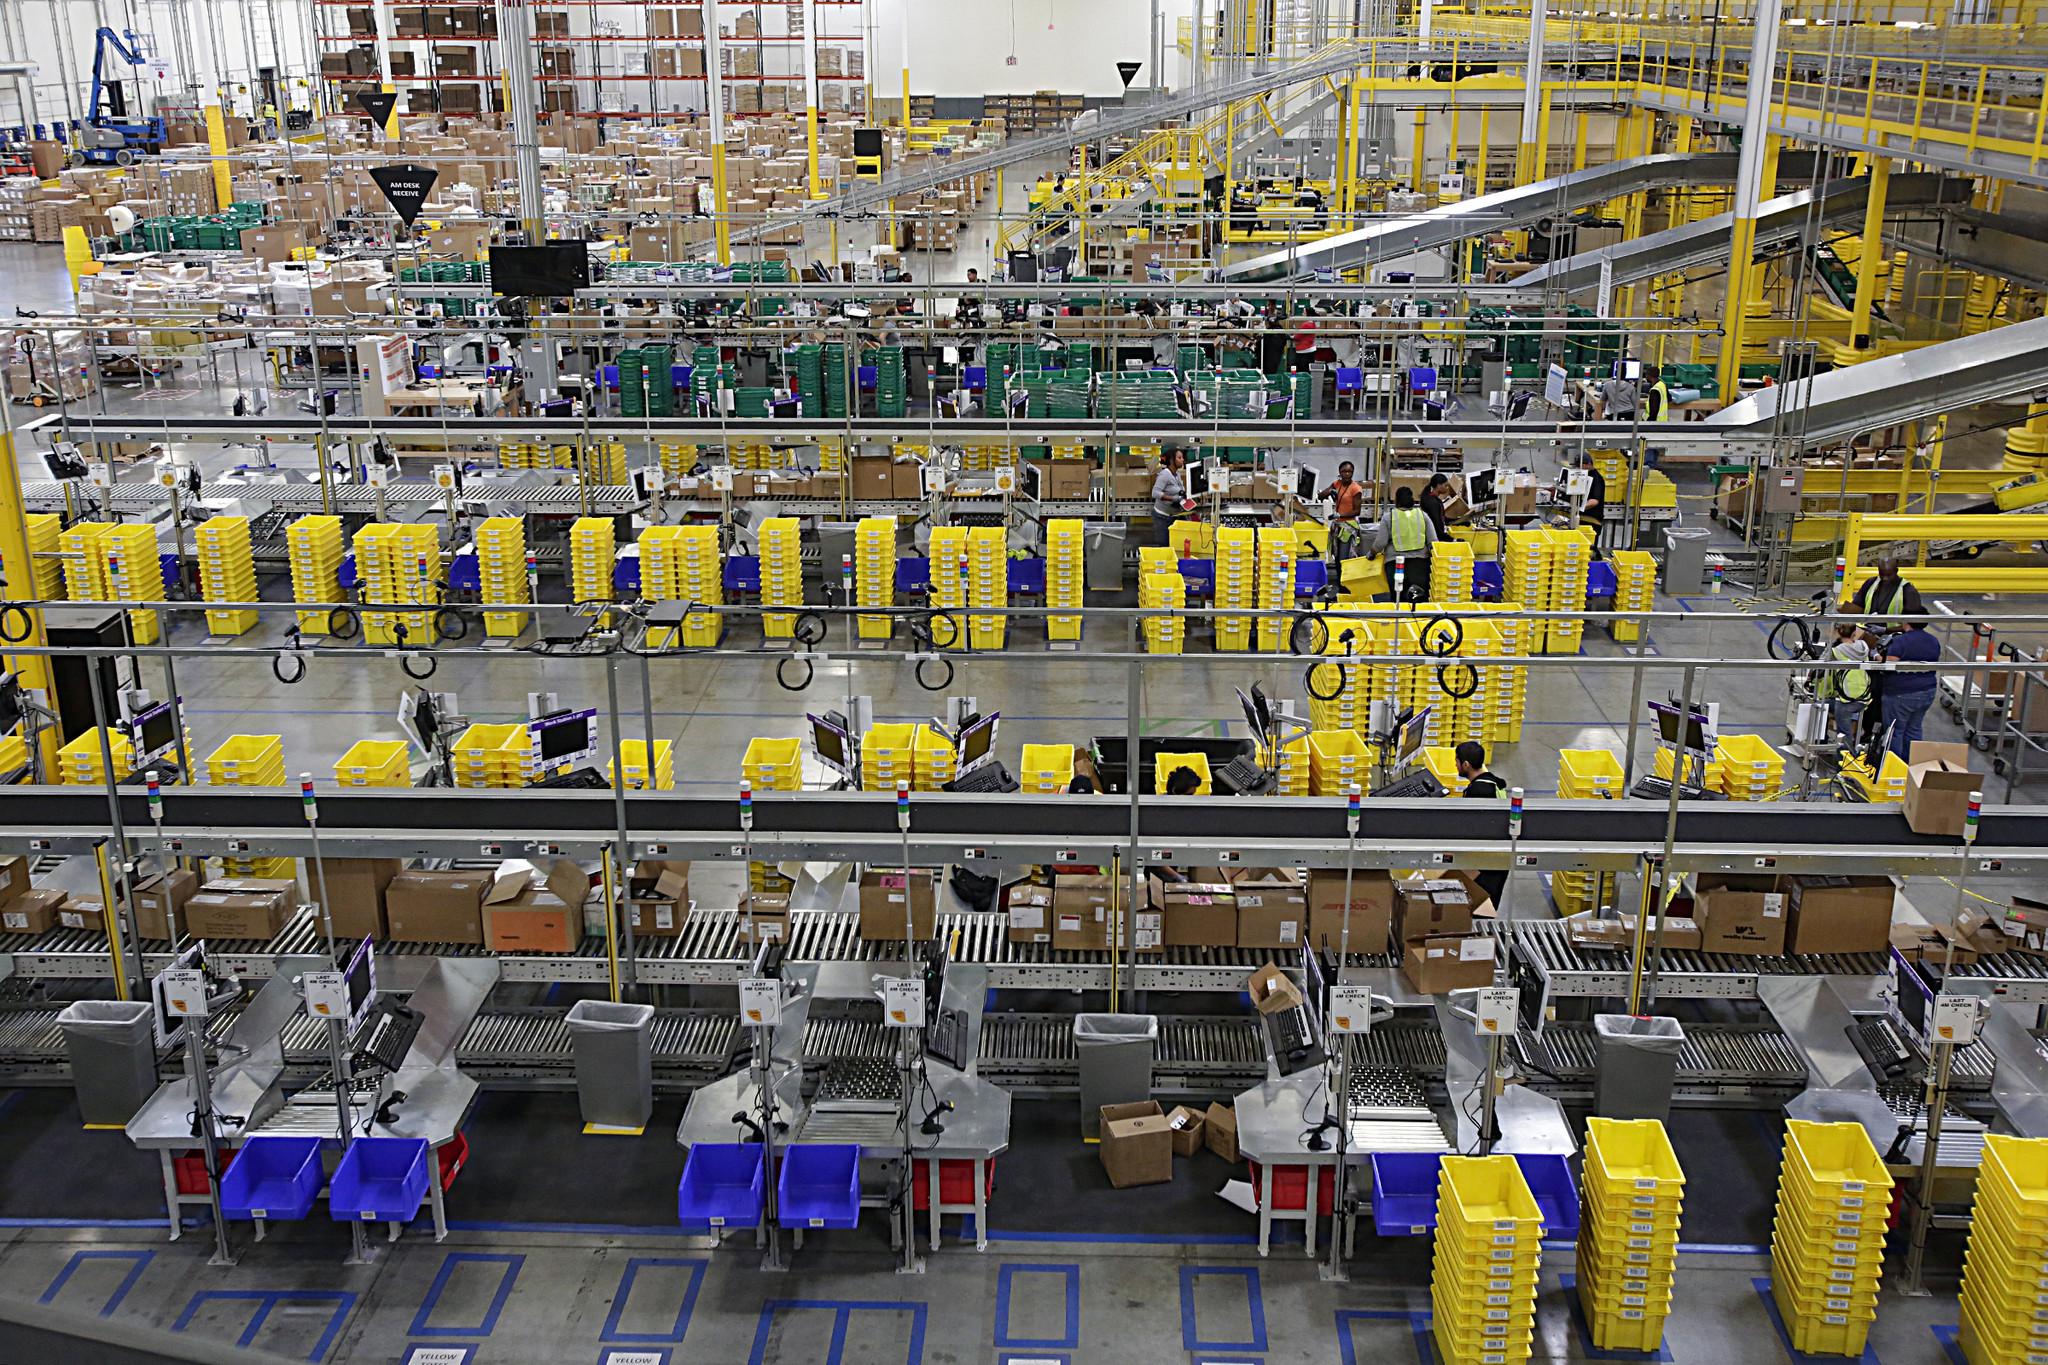 Amazon's warehouse in San Bernardino, seen here in 2013, is one of five in the Inland Empire.